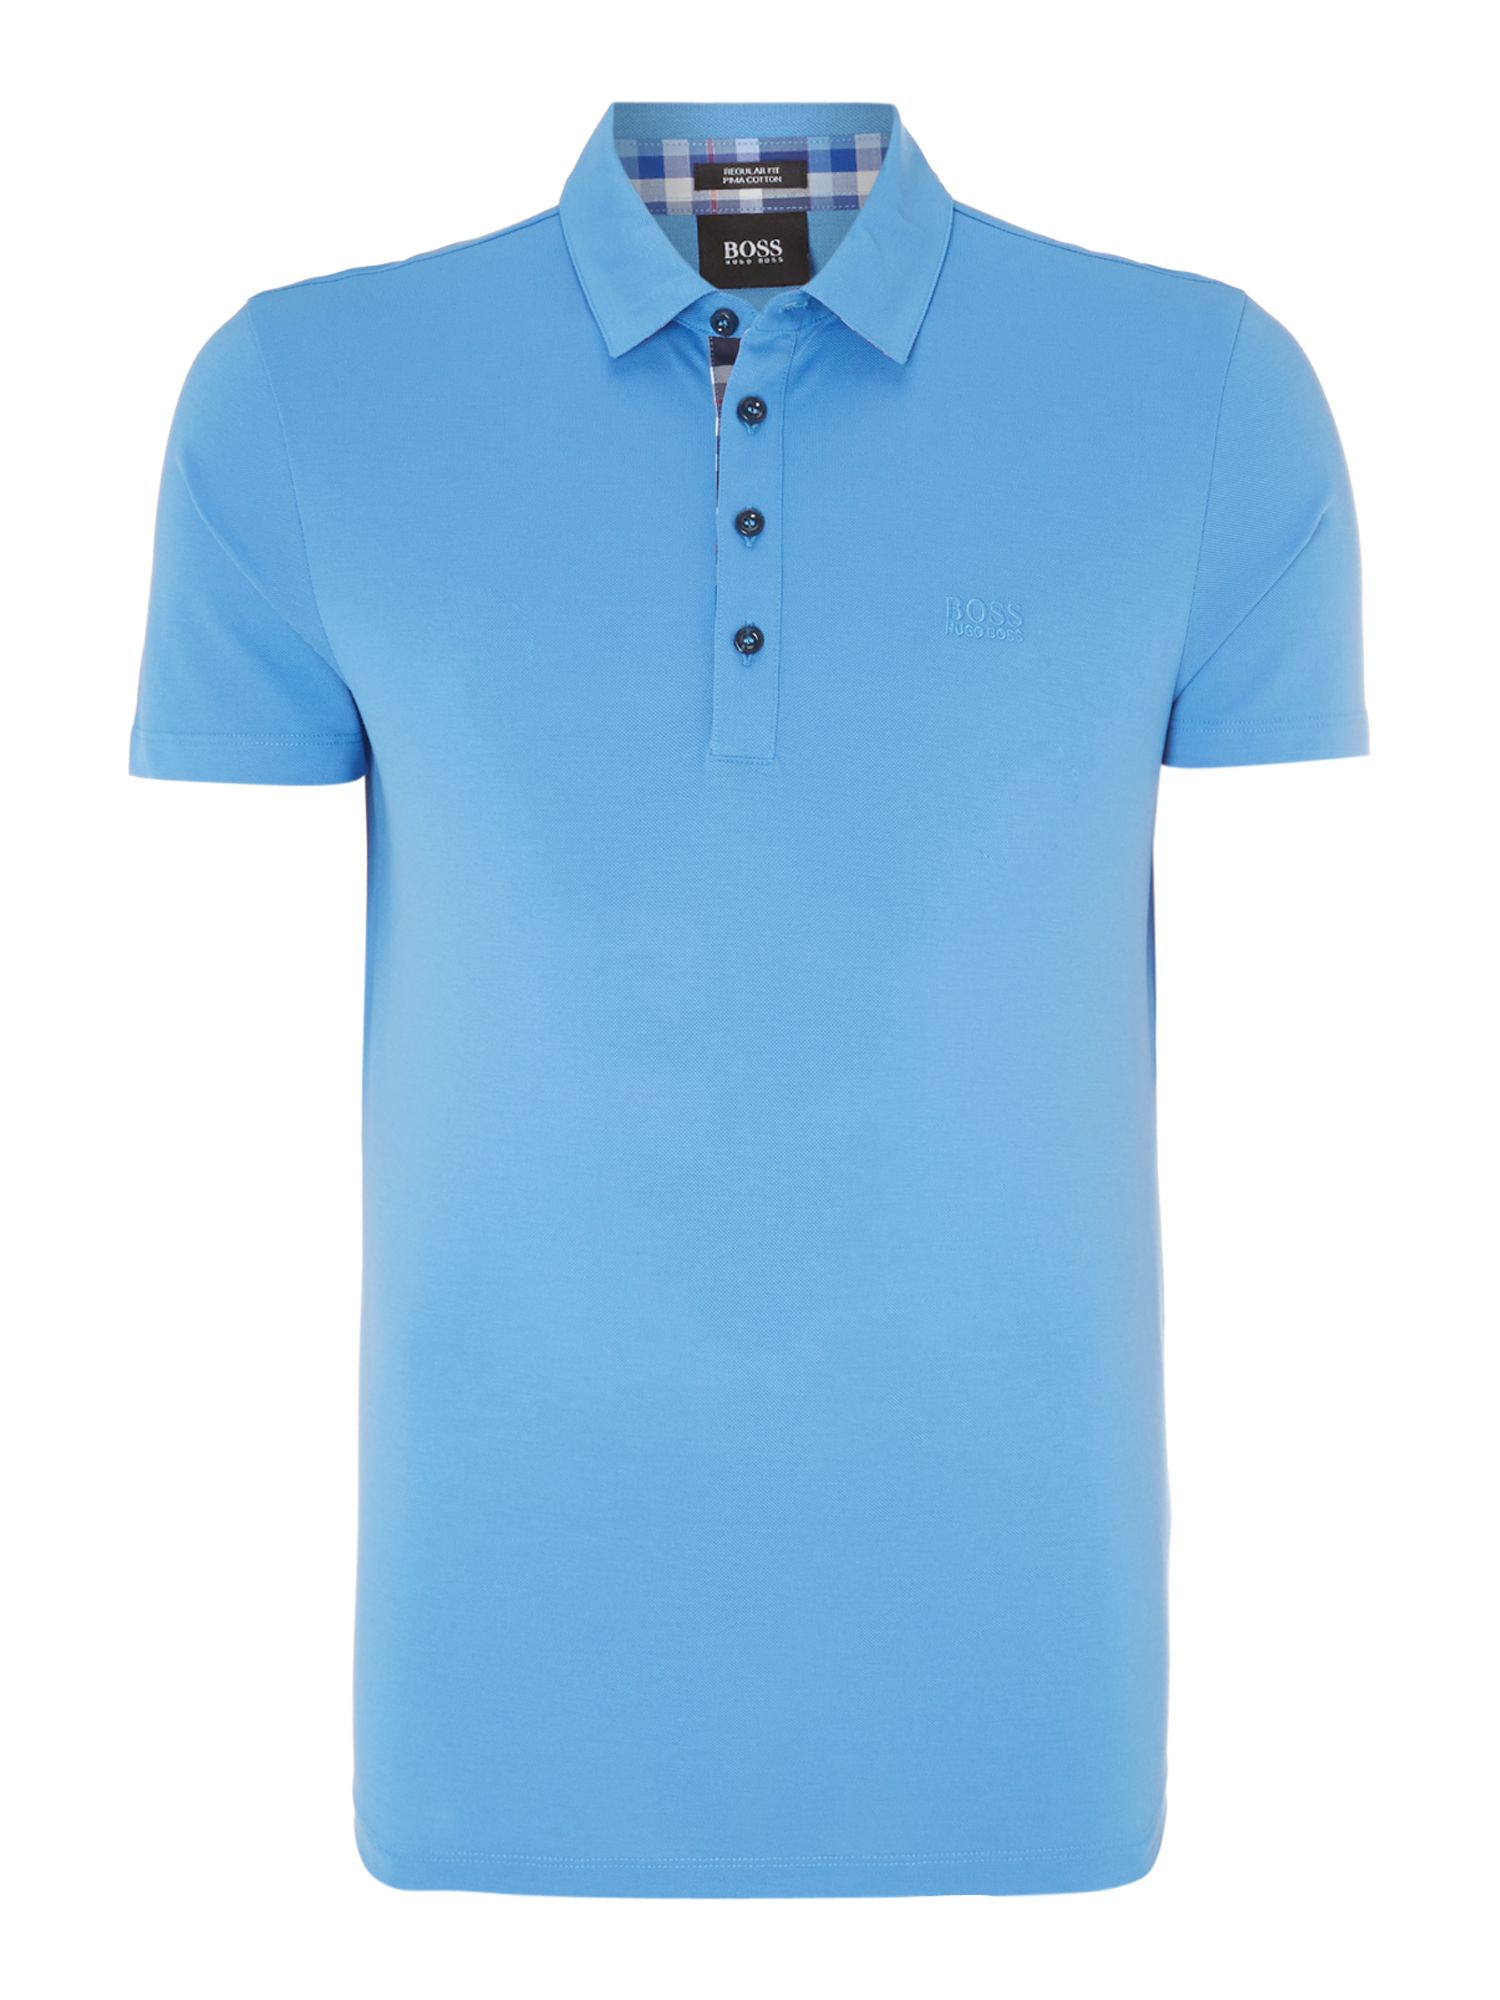 Pique collar check polo shirt